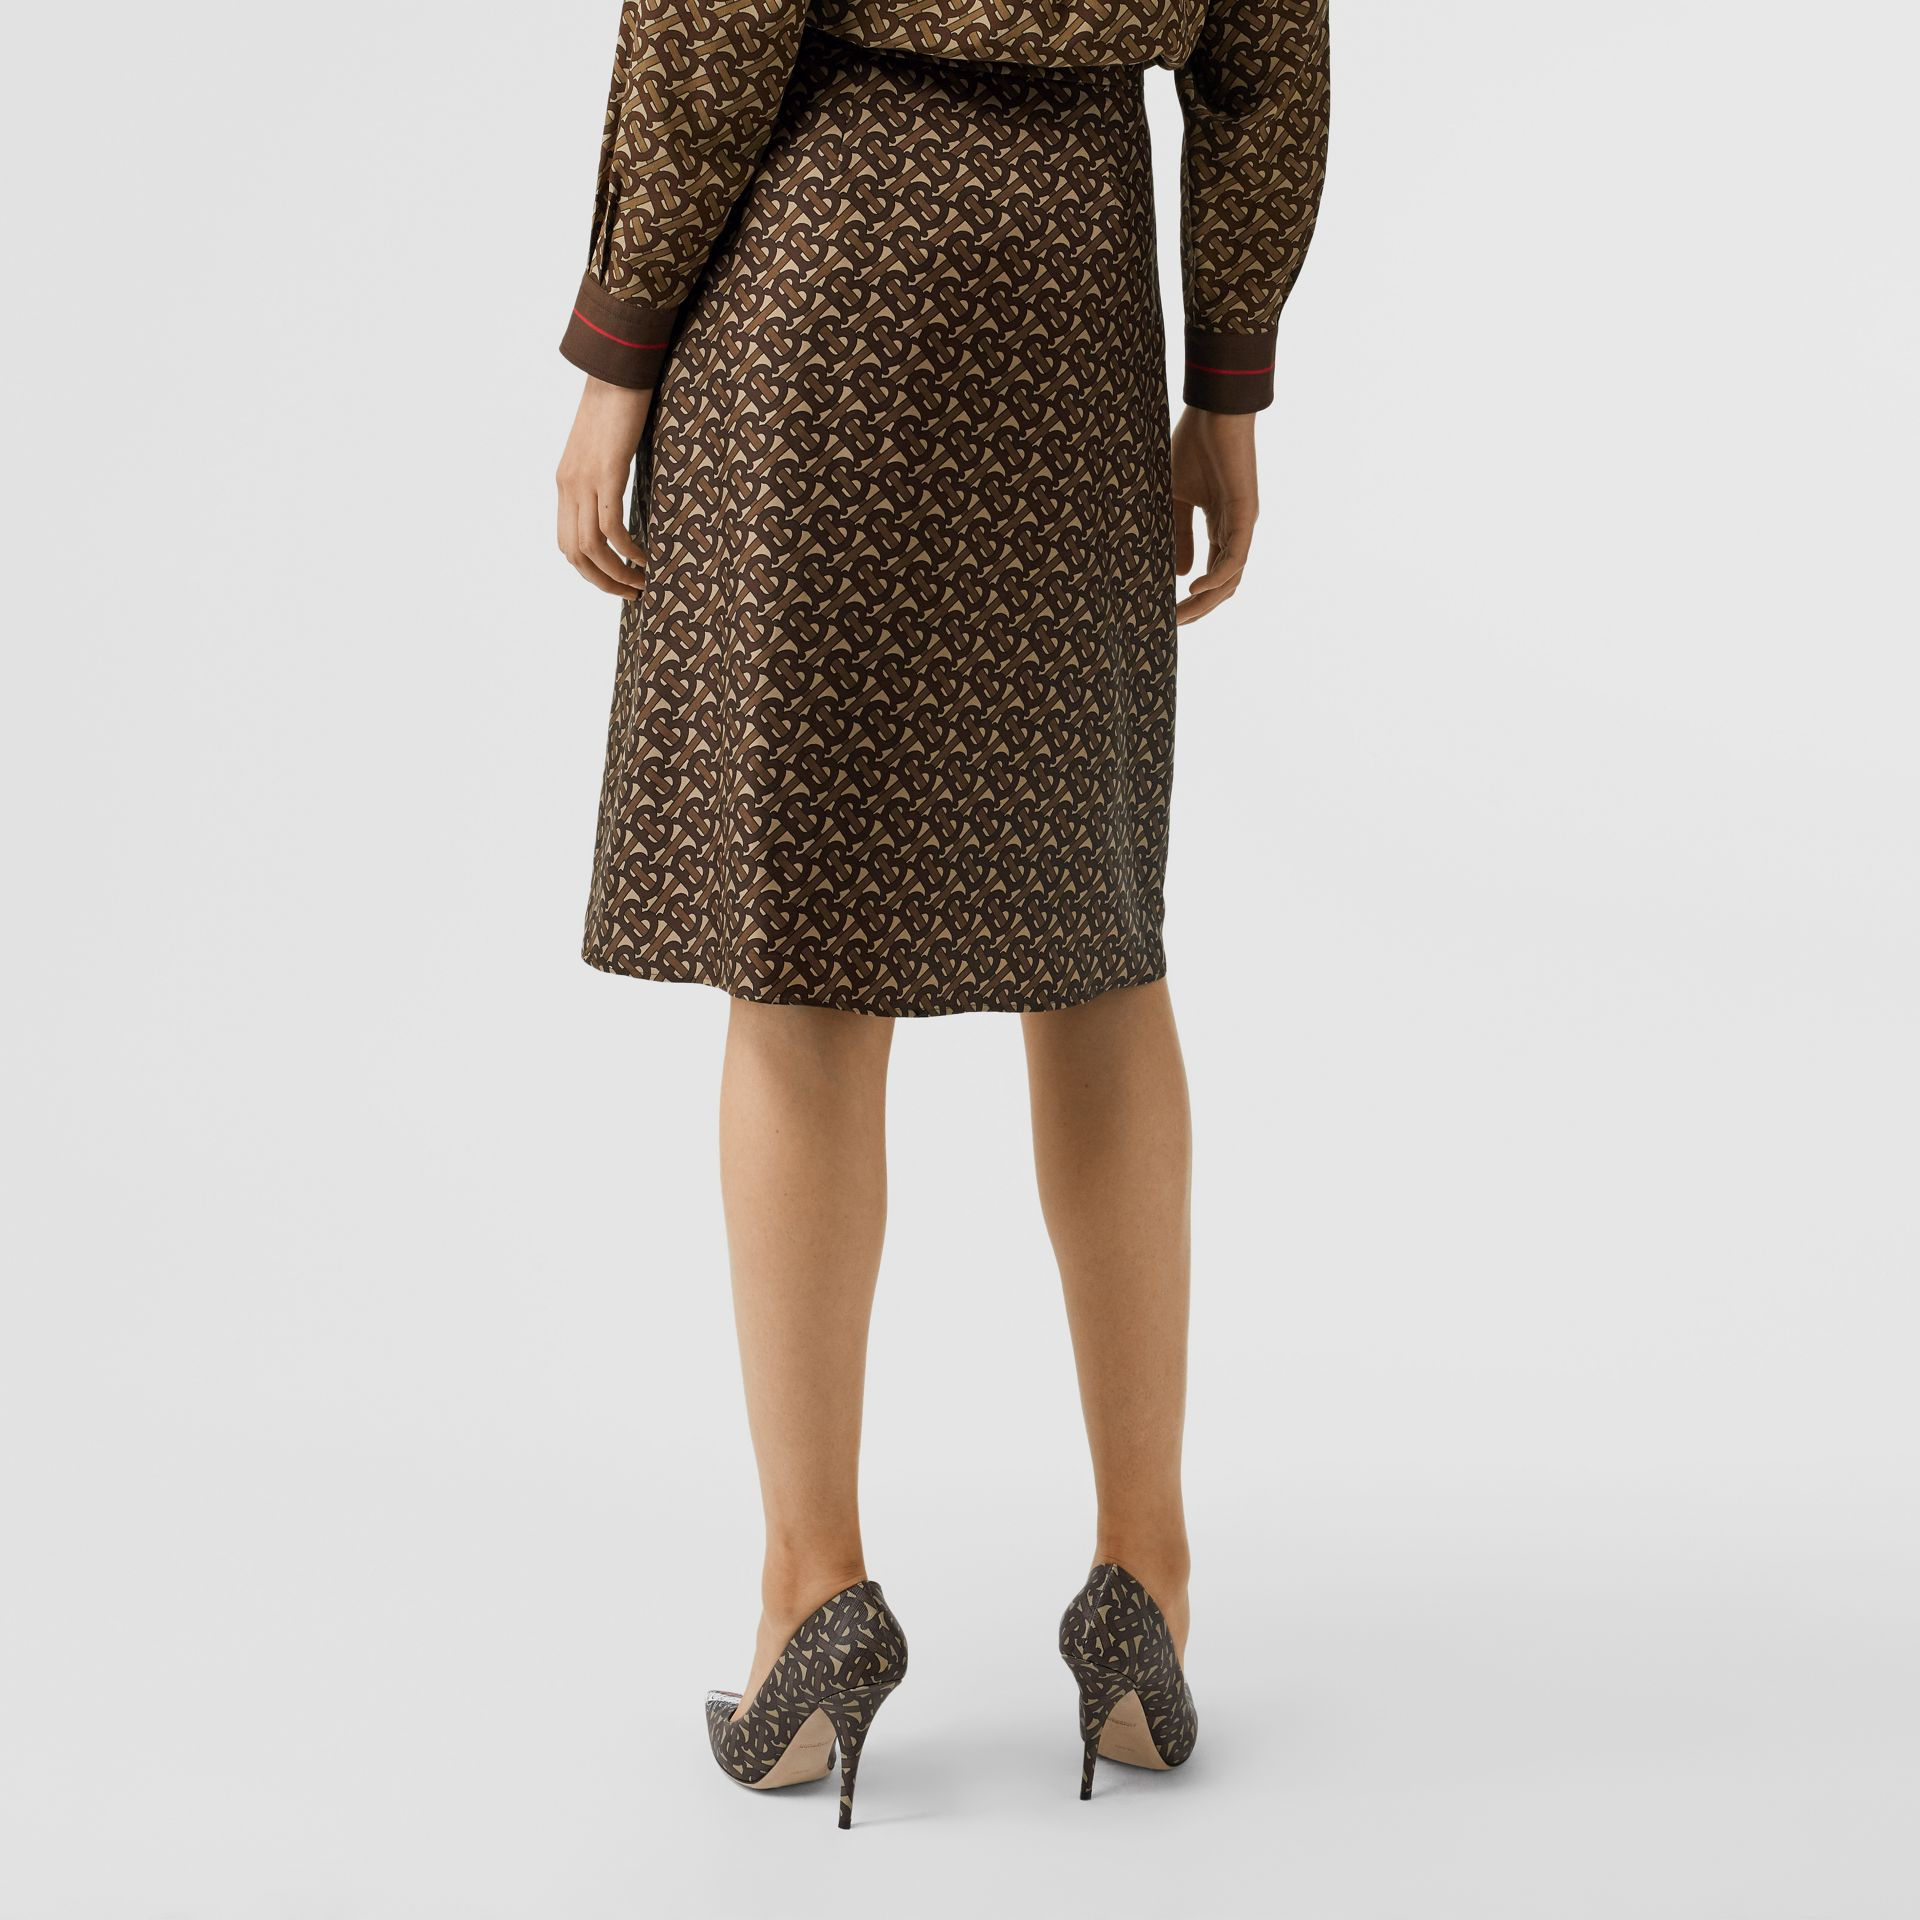 Monogram Stripe Print Silk Skirt in Bridle Brown - Women | Burberry - gallery image 2